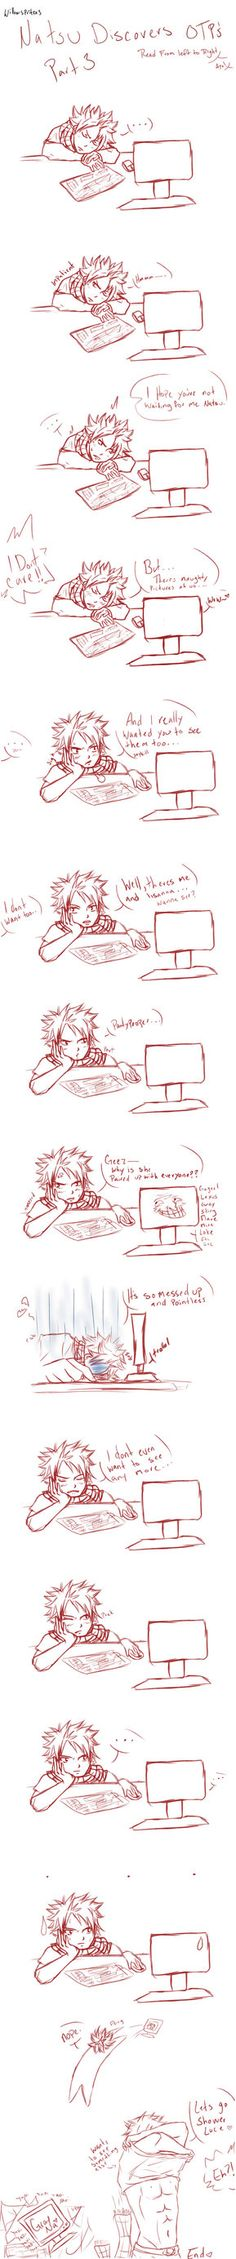 Natsu Discovers OTP's - Nalu III by willowspritex3 on DeviantArt